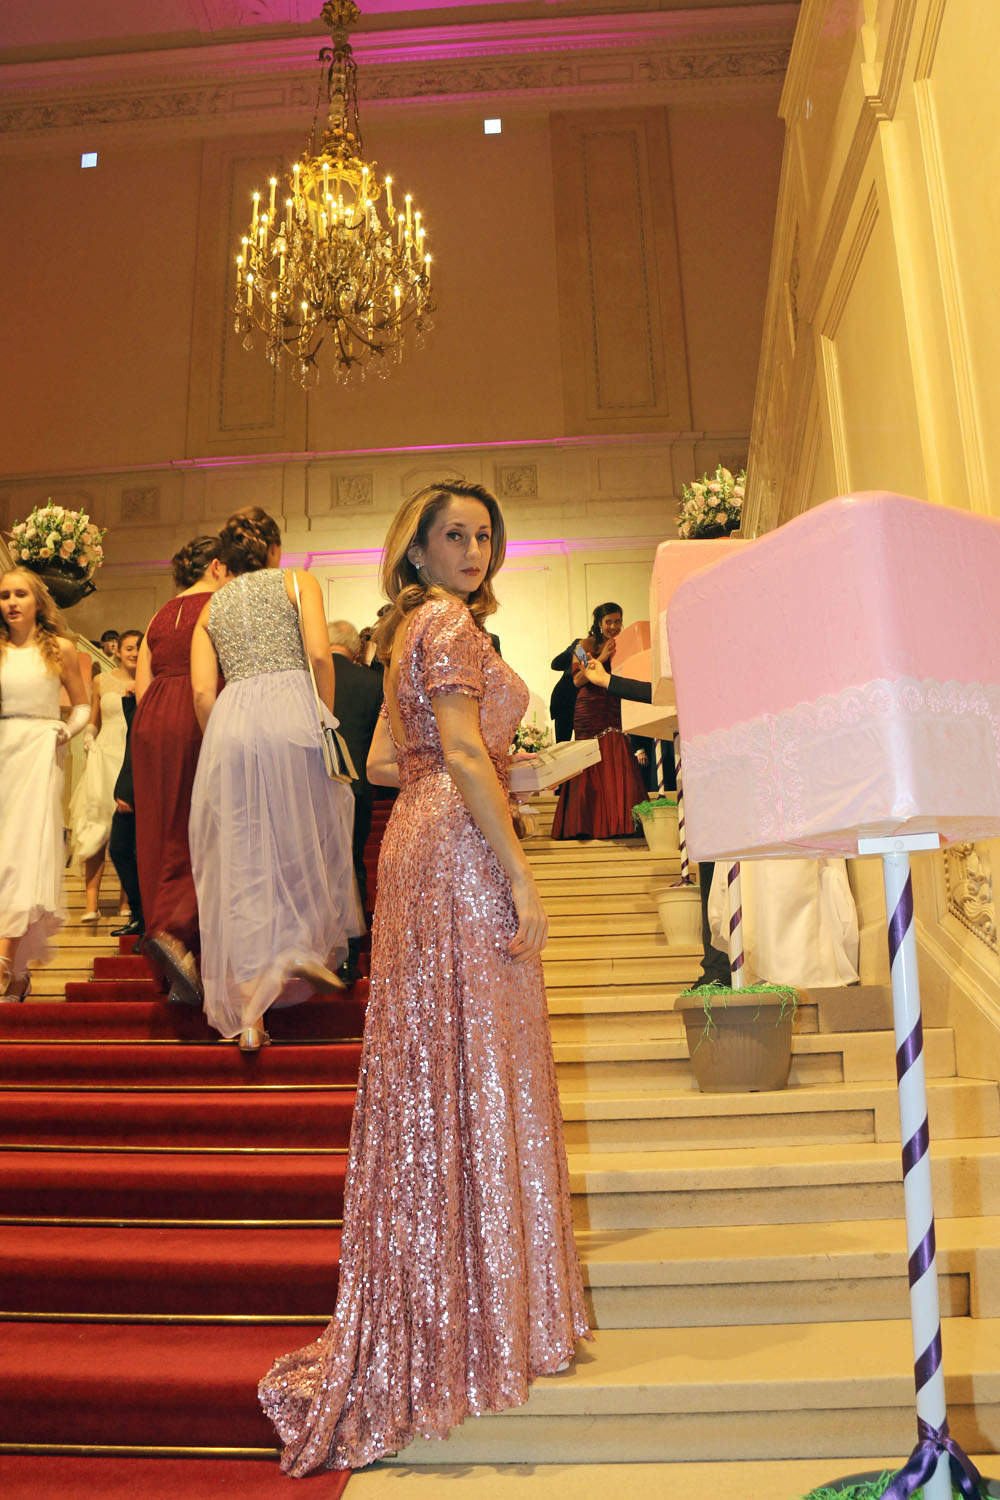 colourclub-zuckerbaeckerball-laskari-laskarivienna-laskaridress-pink-evening-dress